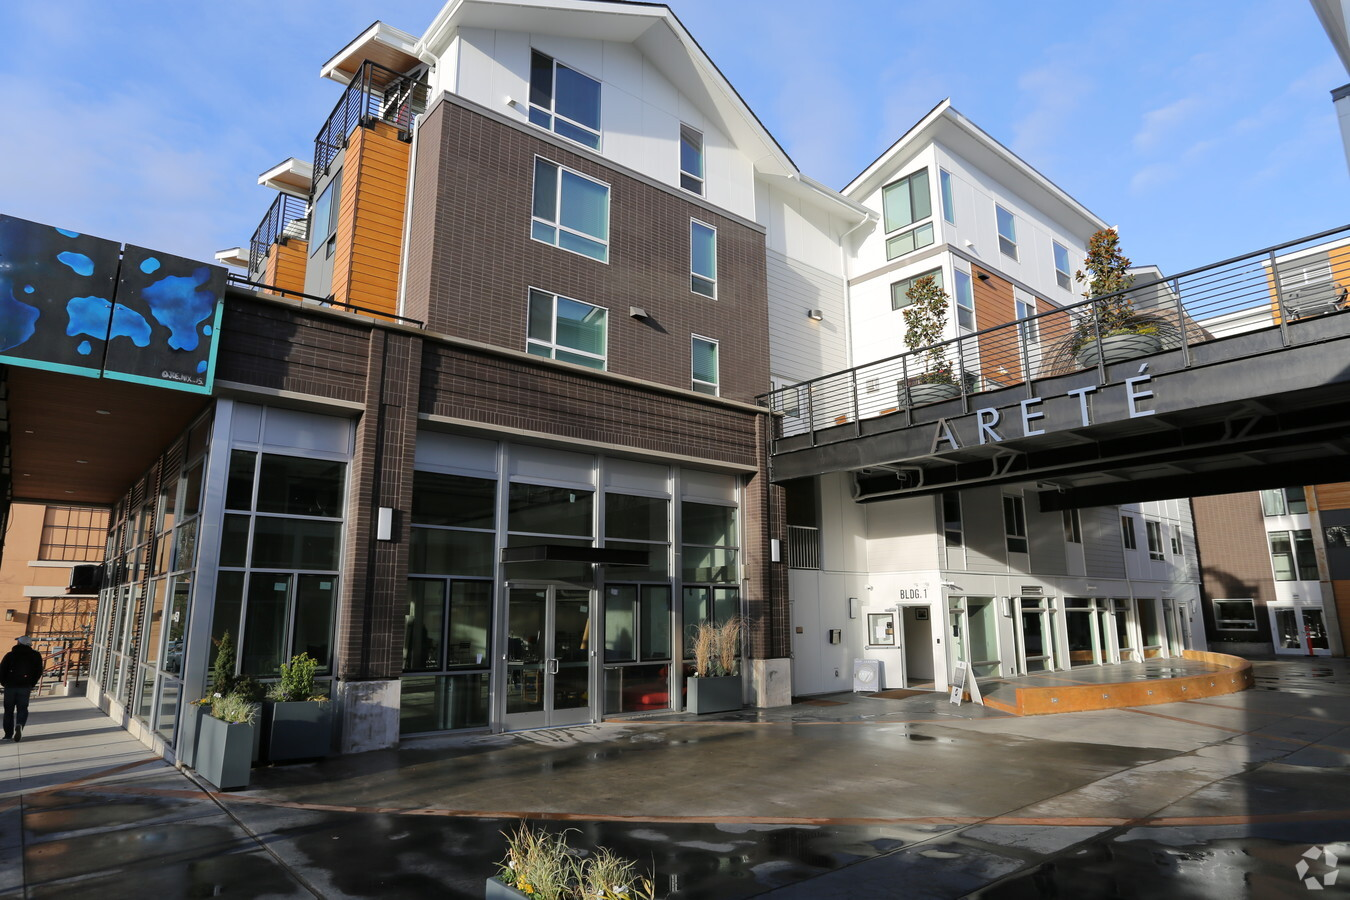 Arete Kirkland Parking 450 Central Way Kirkland Wa 98033 Apartments Property For